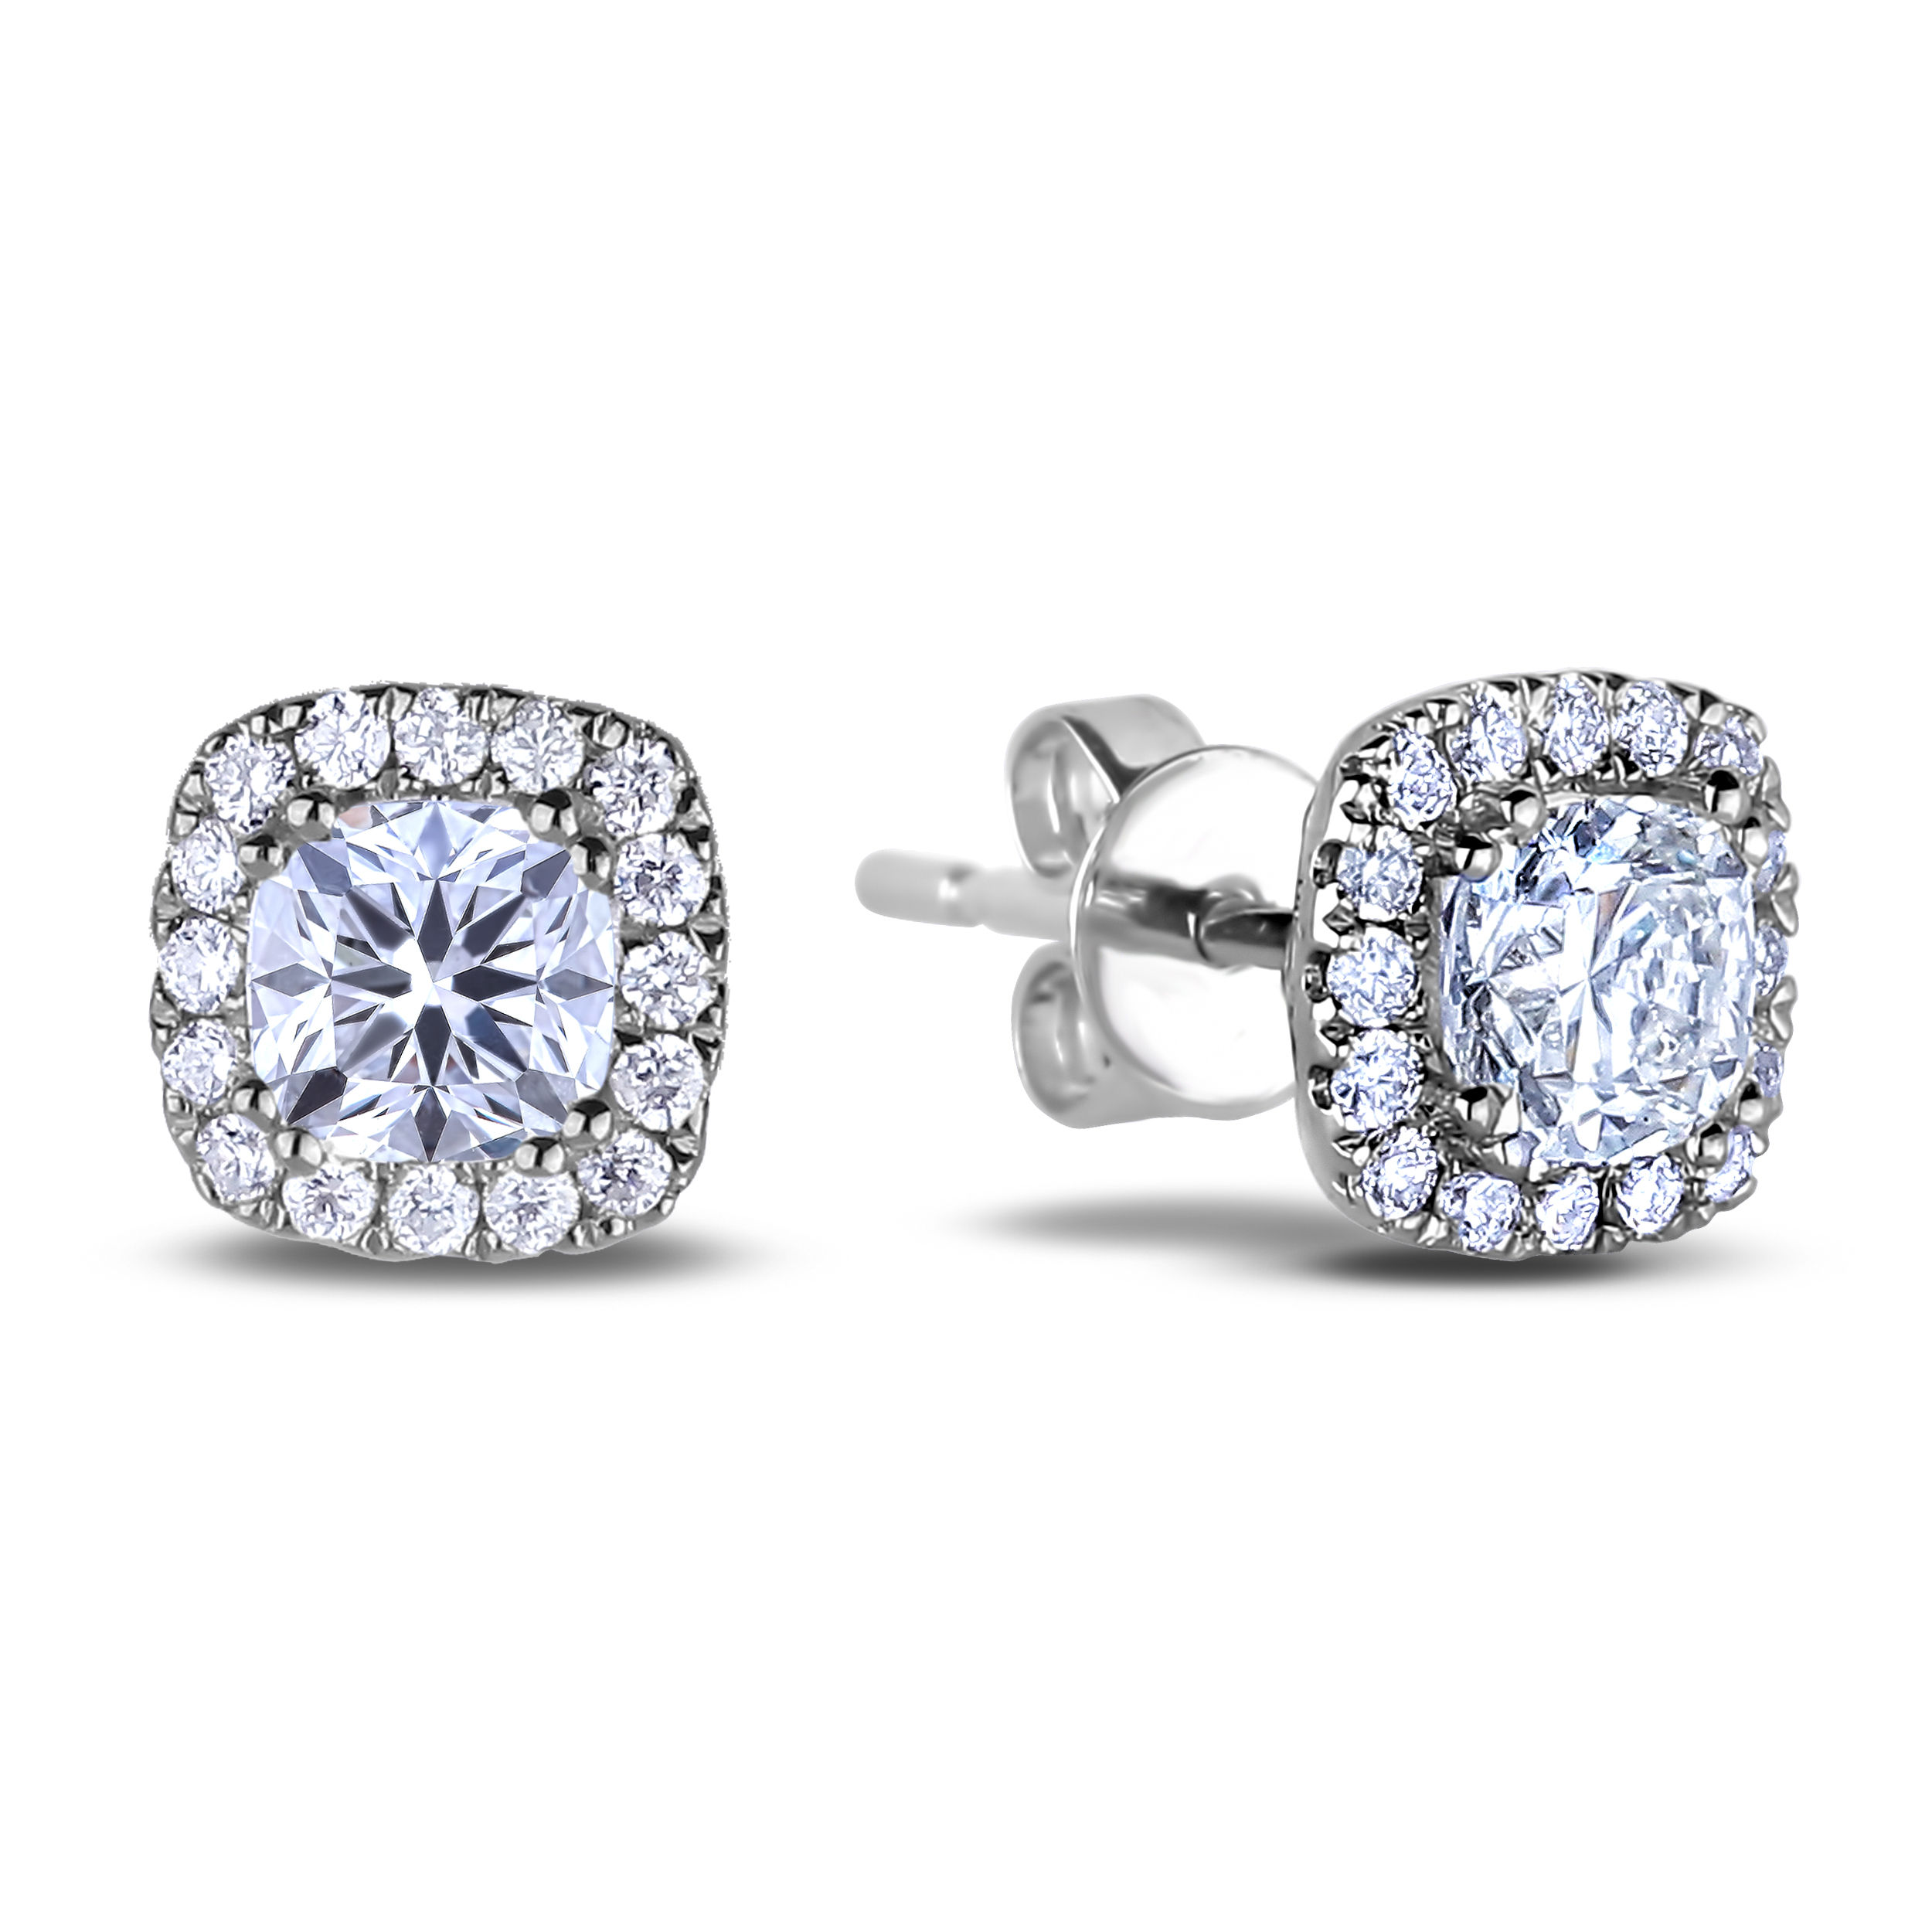 Diamond Stud Earrings SGE319 (Earrings)